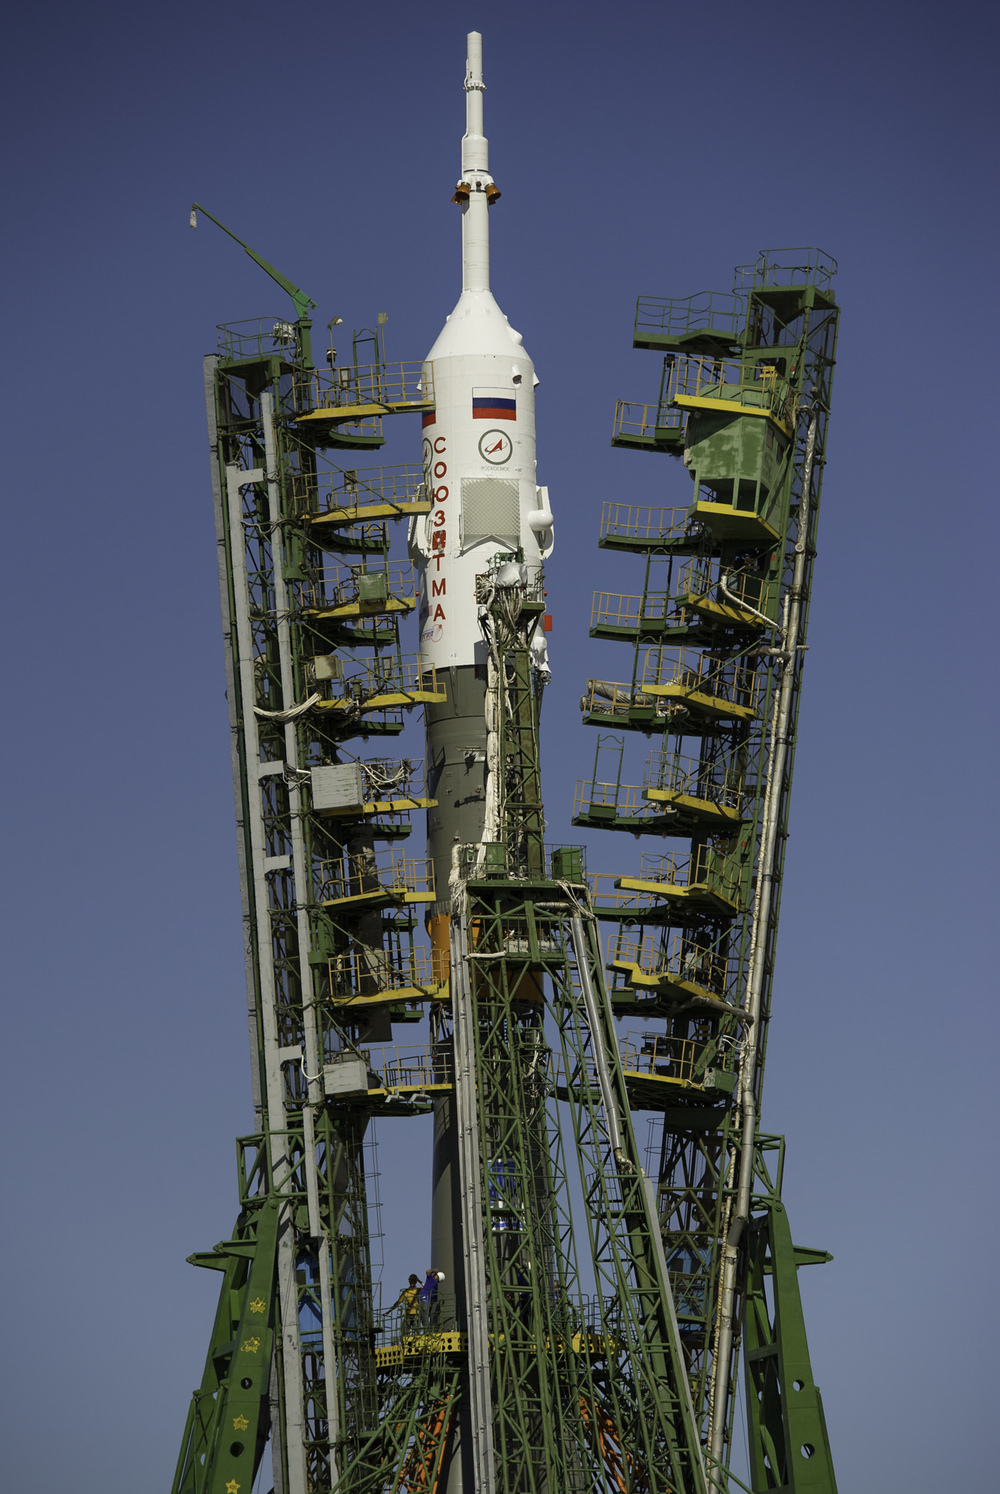 Large gantry mechanisms on either side of the Soyuz TMA-205M spacecraft are raised into position to secure the rocket at the launch pad on Thursday, July 12, 2012 at the Baikonur Cosmodrome in Kazakhstan. (NASA/Carla Cioffi)